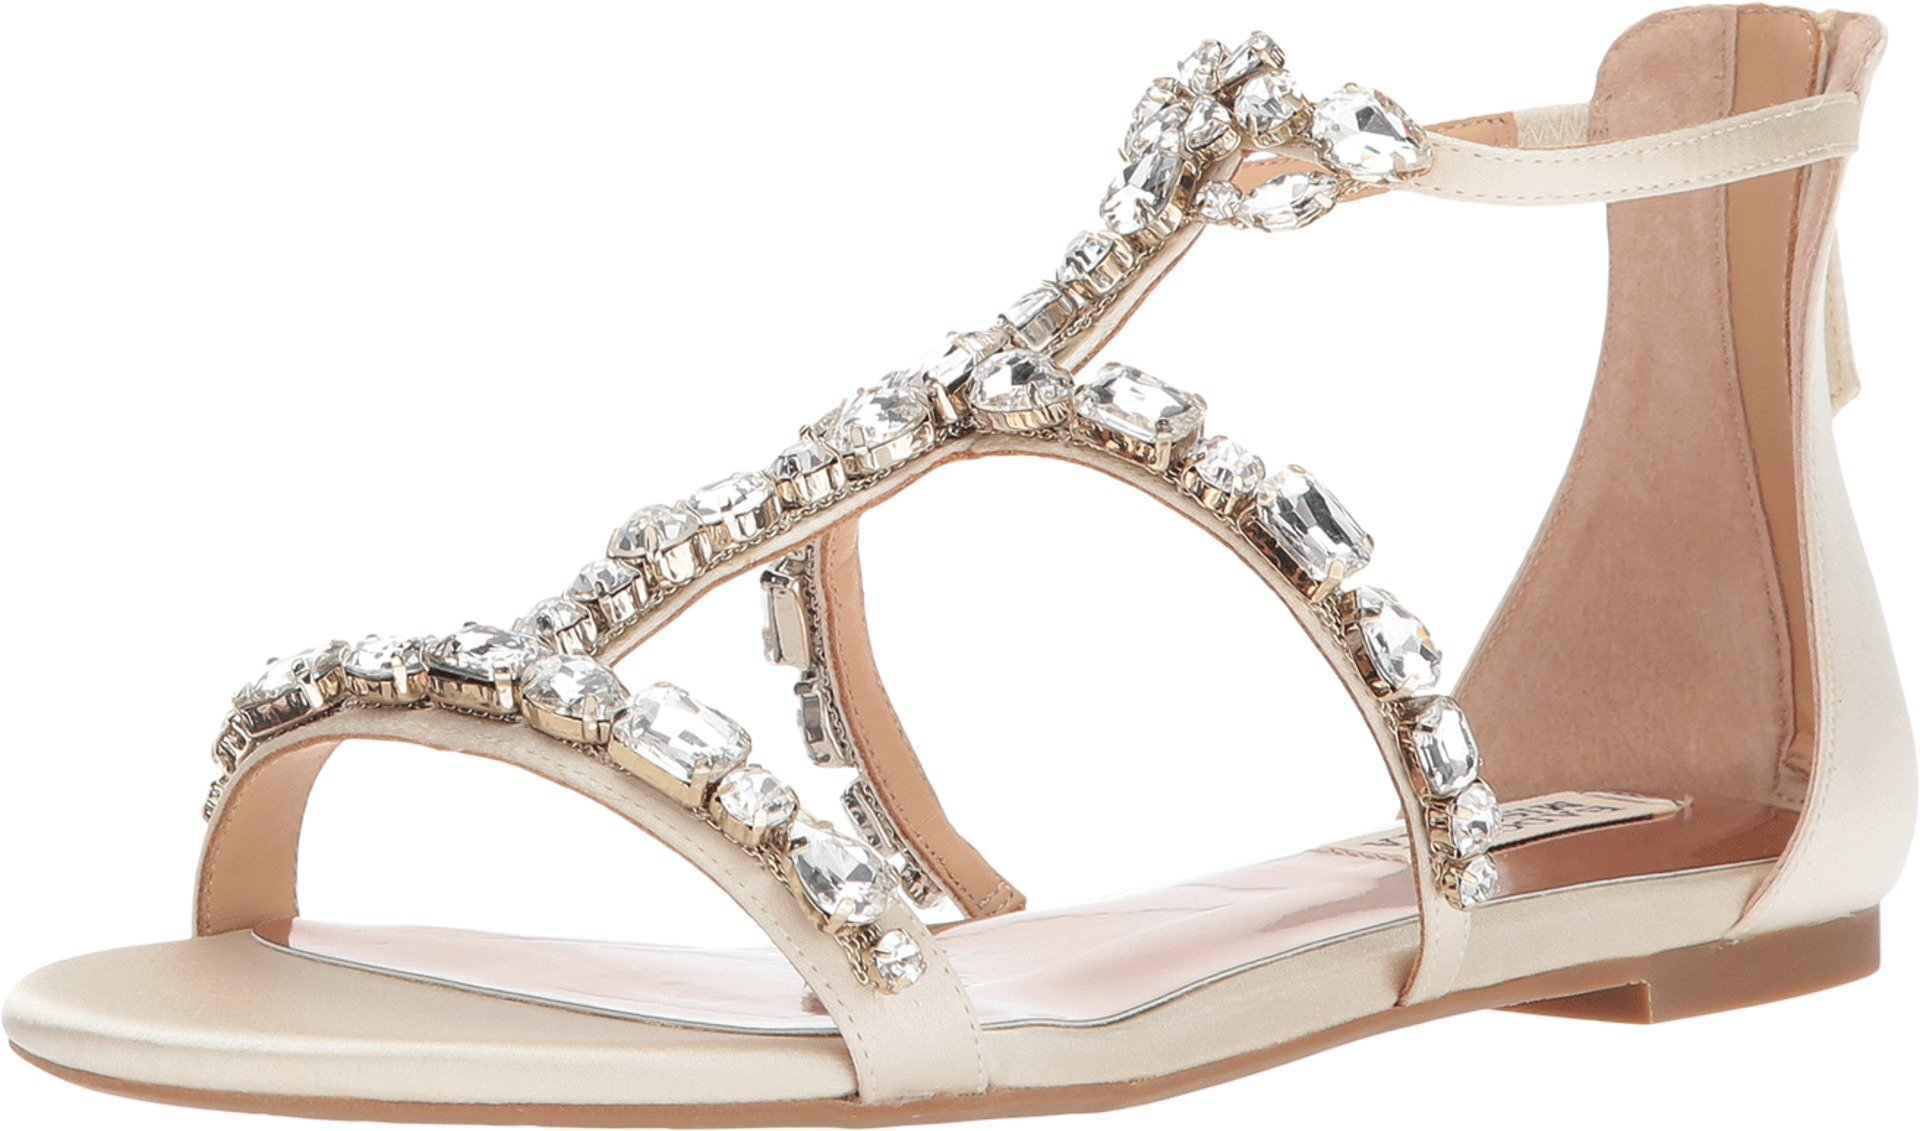 Badgley Mischka Women's Waren Flat Sandal, Ivory, 8.5 M US